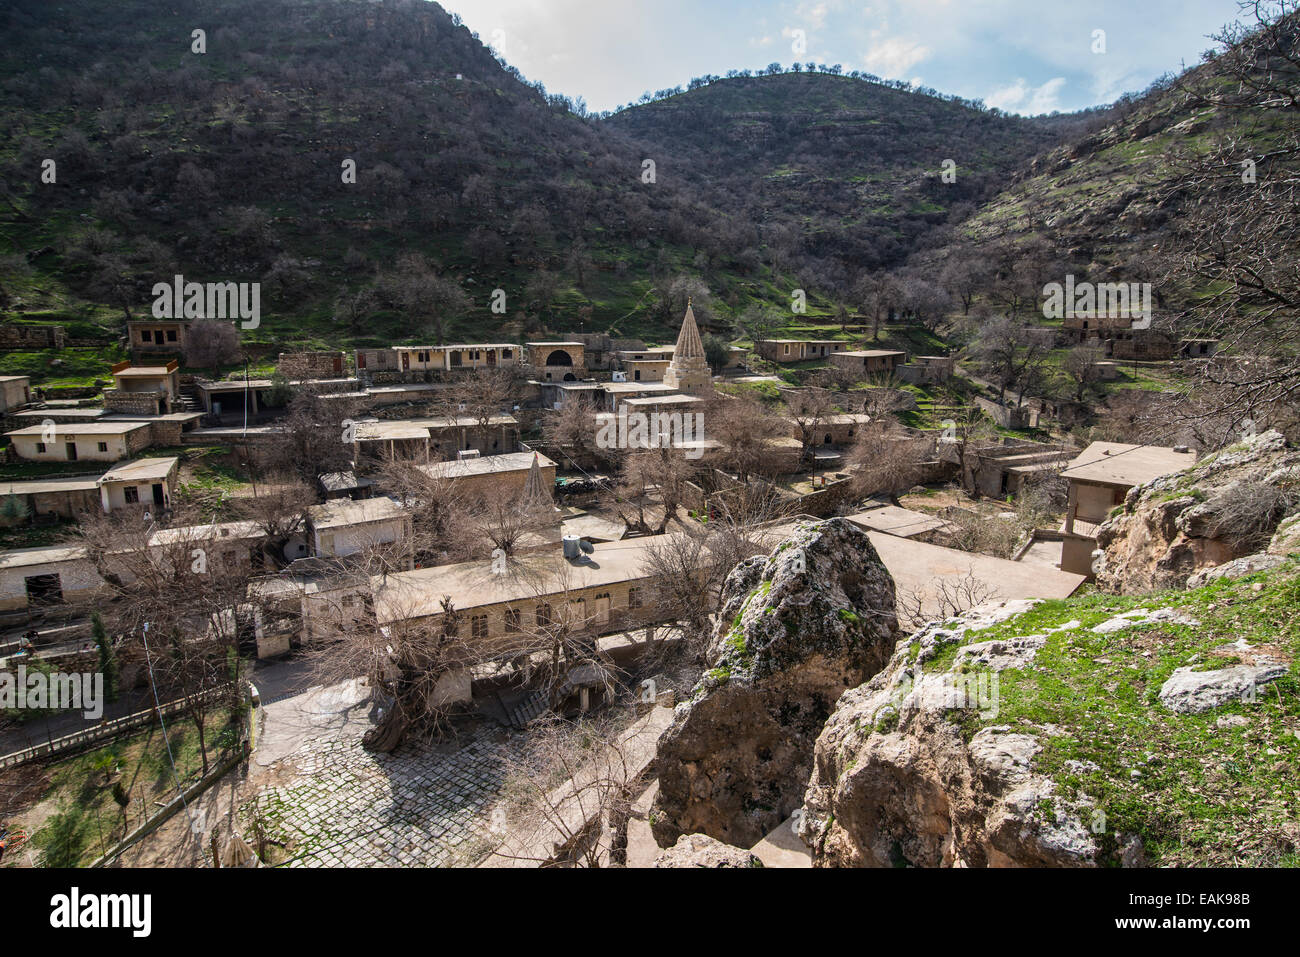 Townscape of Lalish, Lalish, Iraq - Stock Image